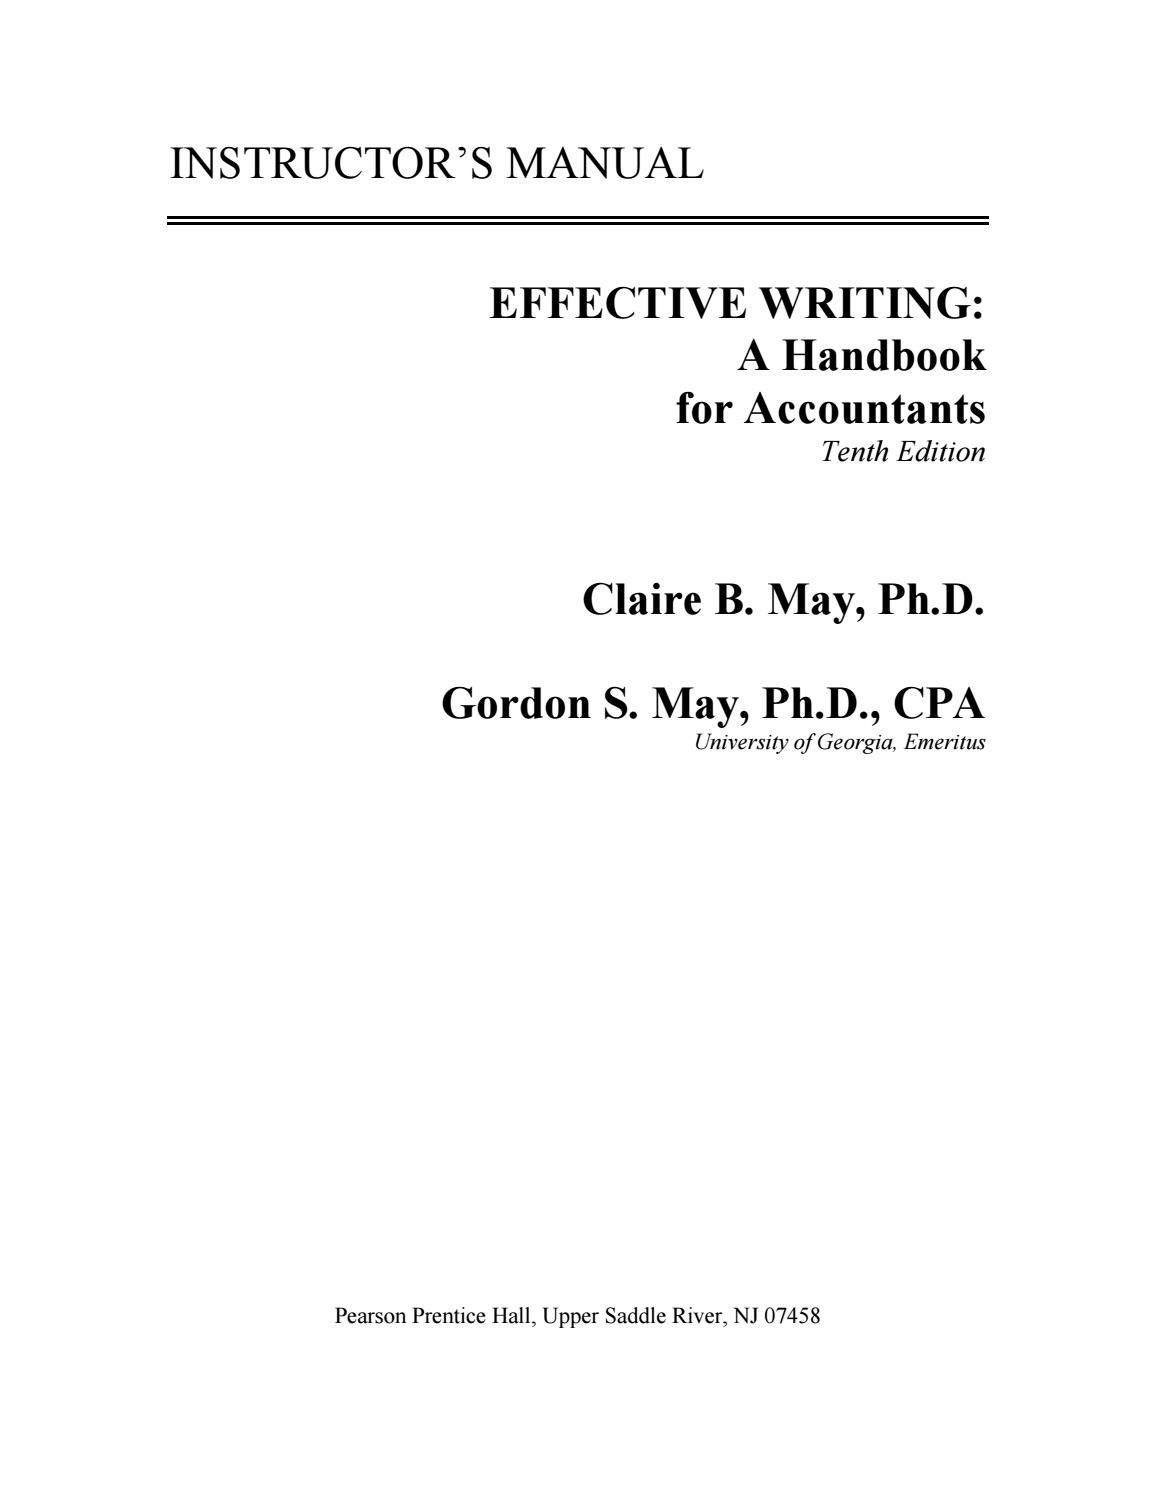 Solution Manual For Effective Writing A Handbook For Accountants